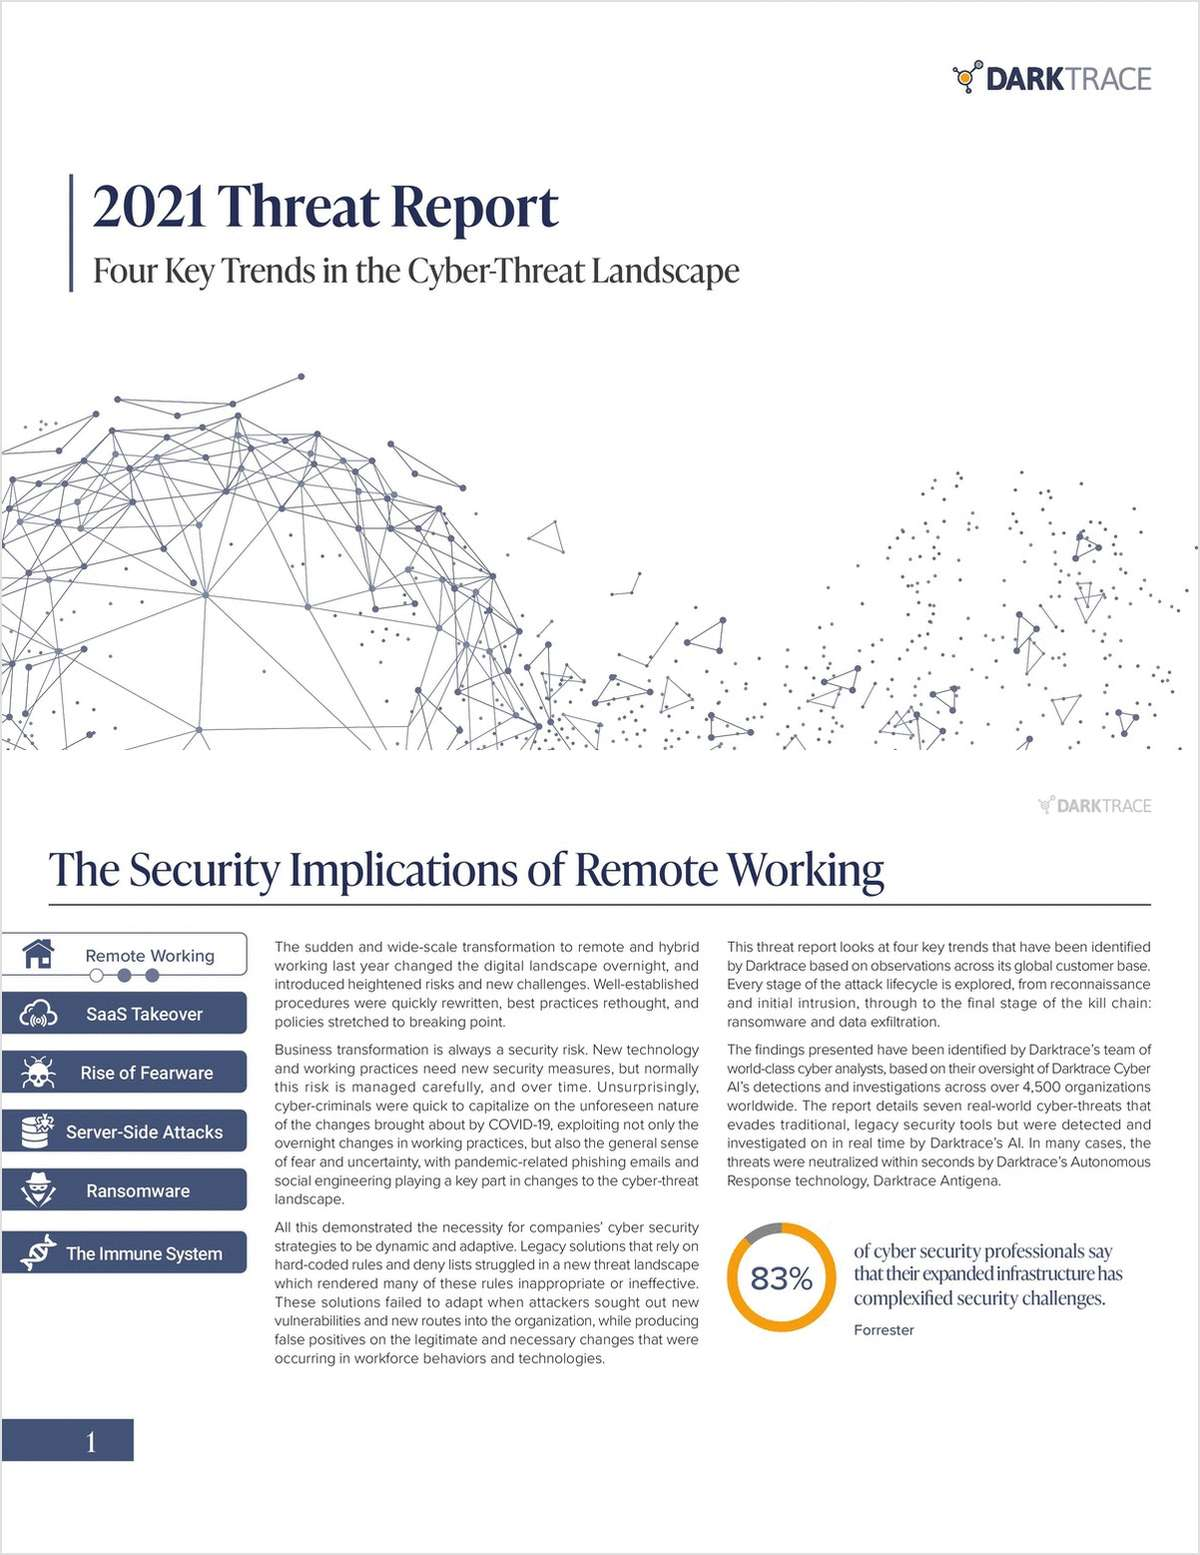 2021 Threat Report: Four Key Trends in the Cyber-Threat Landscape